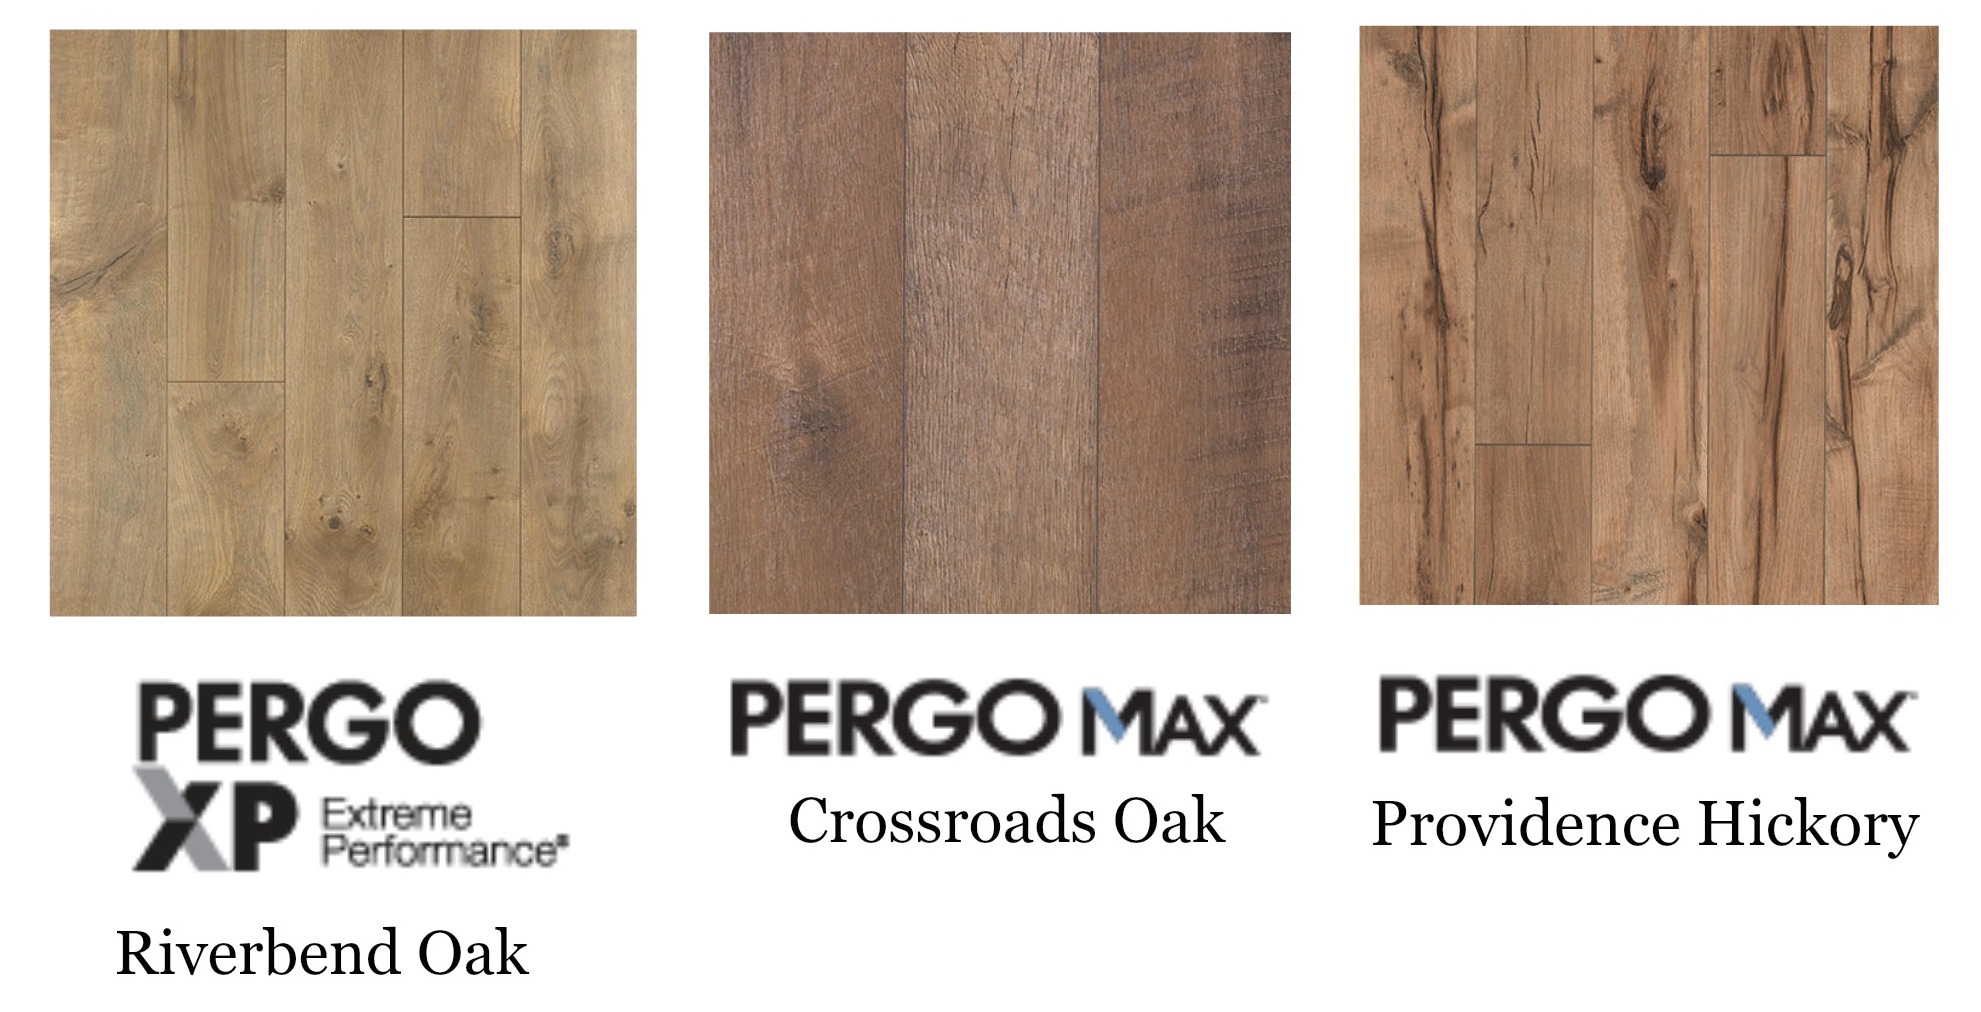 pergo n floor wooden care vs flooring laminate depot engineered floors a surat for home comfy wood car and cleaner